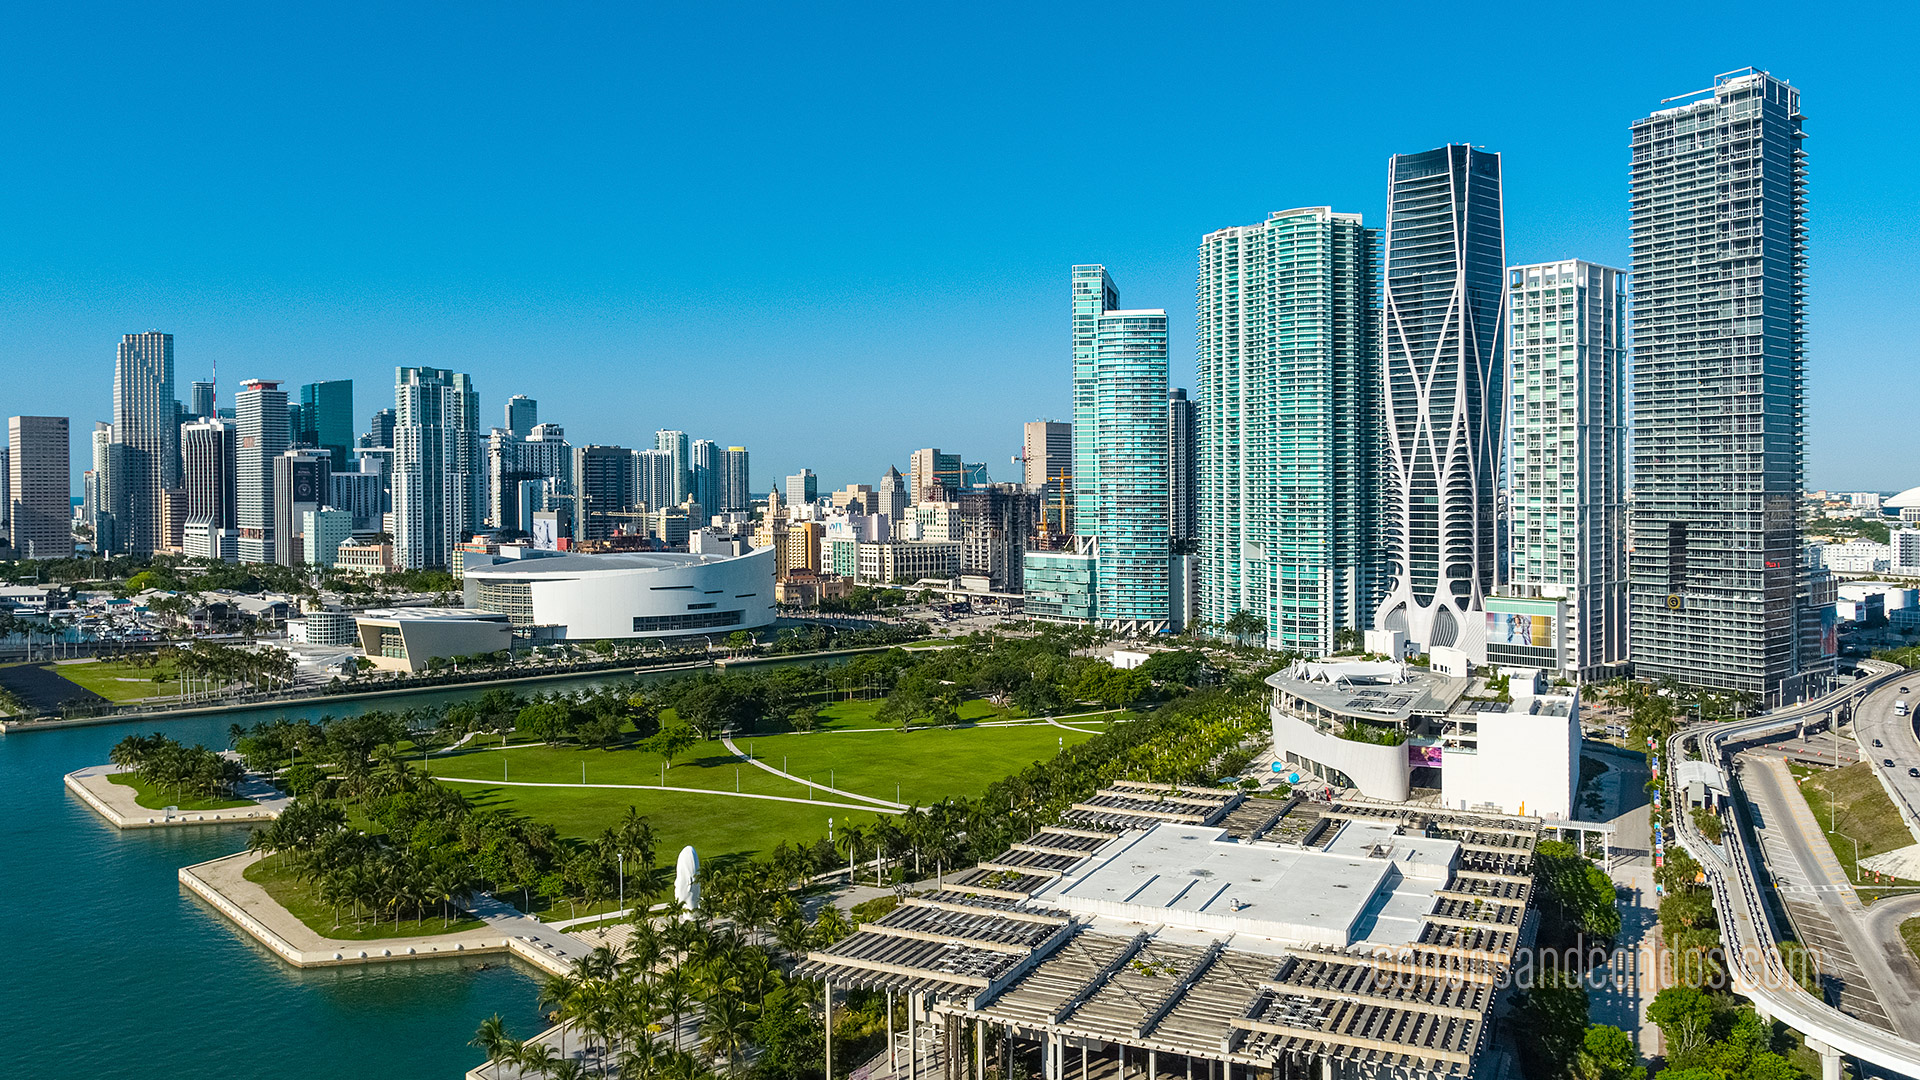 Downtown Miami Neighborhood View